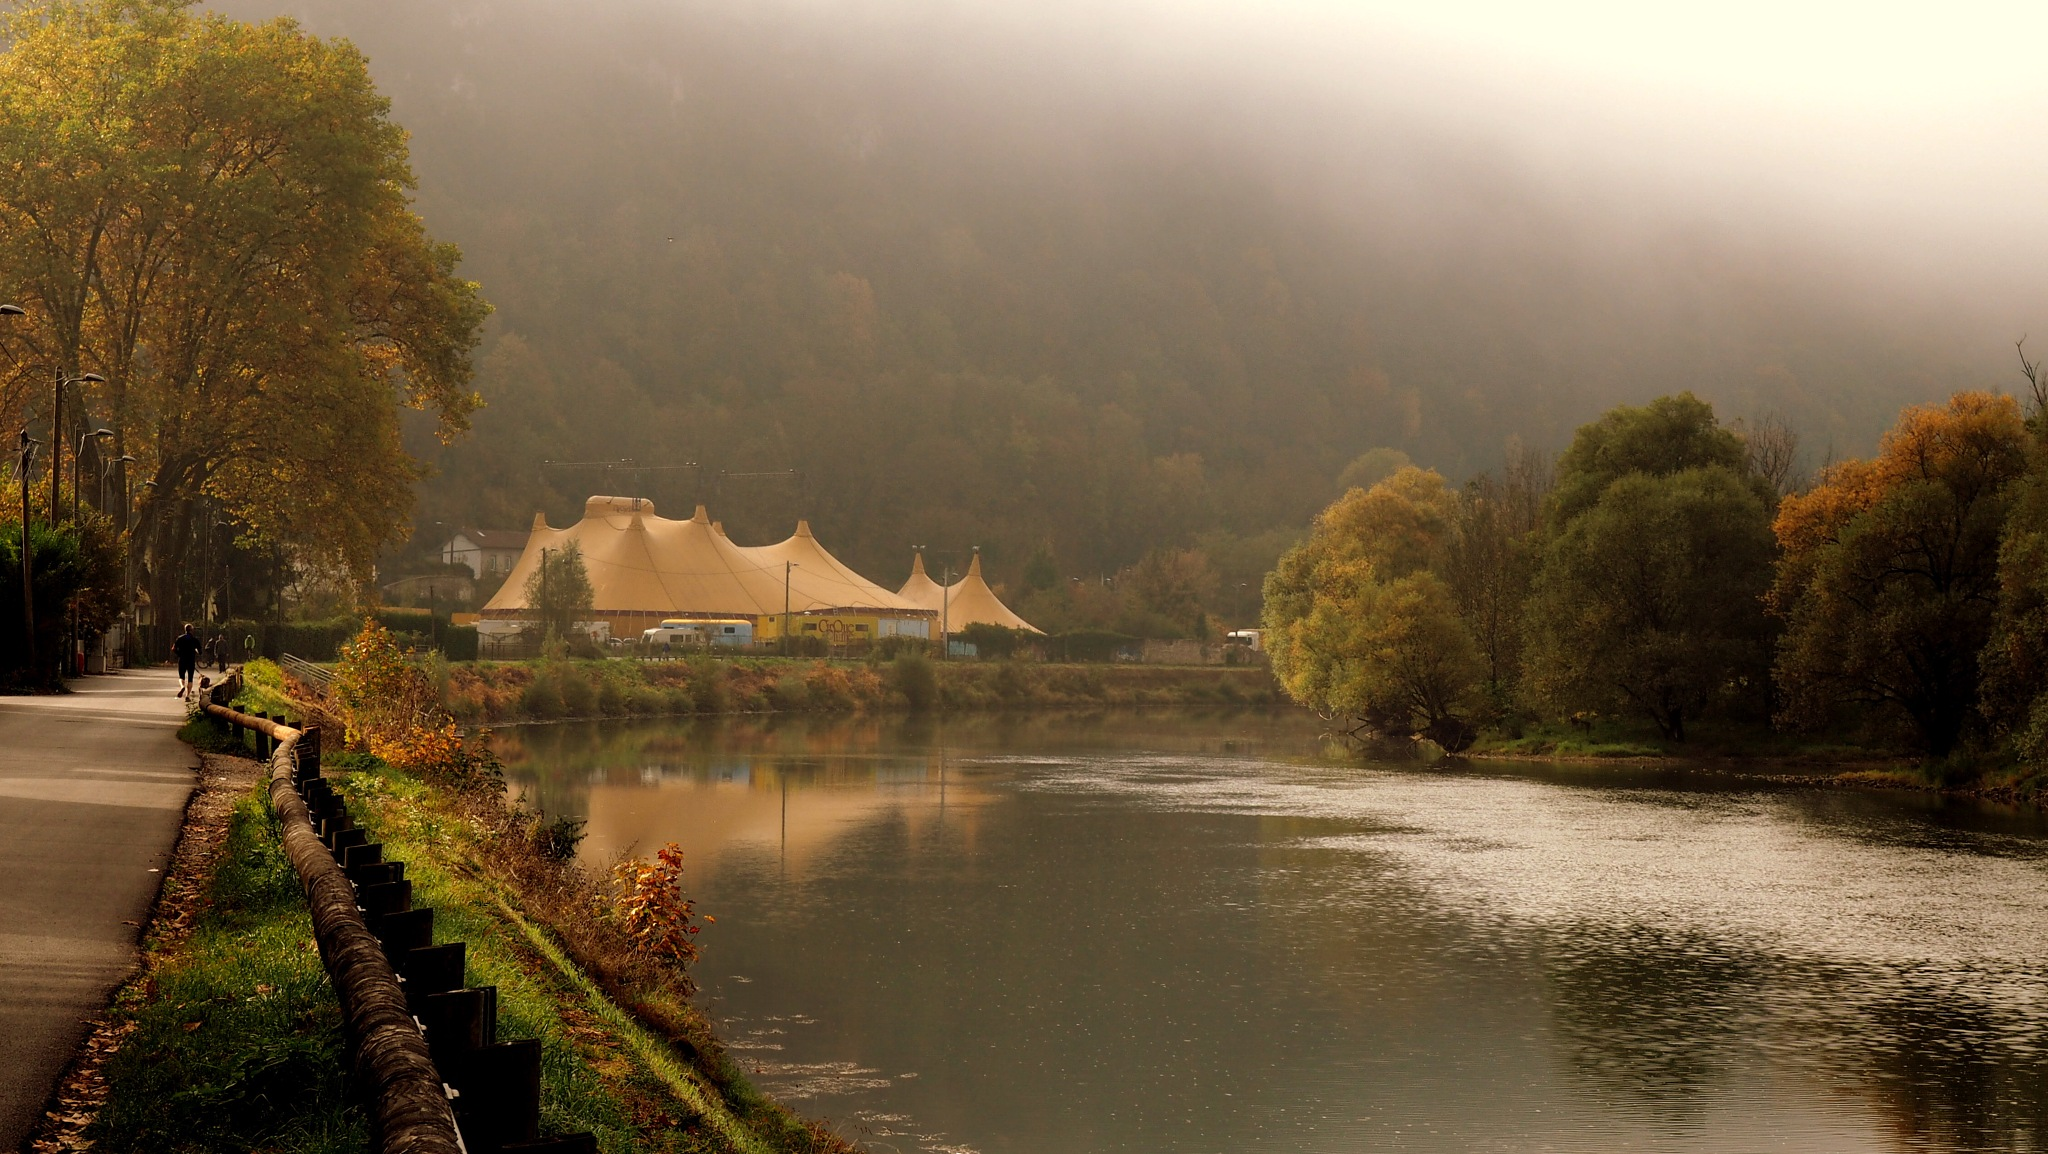 the riverbanks of the Doubs  by alain michel